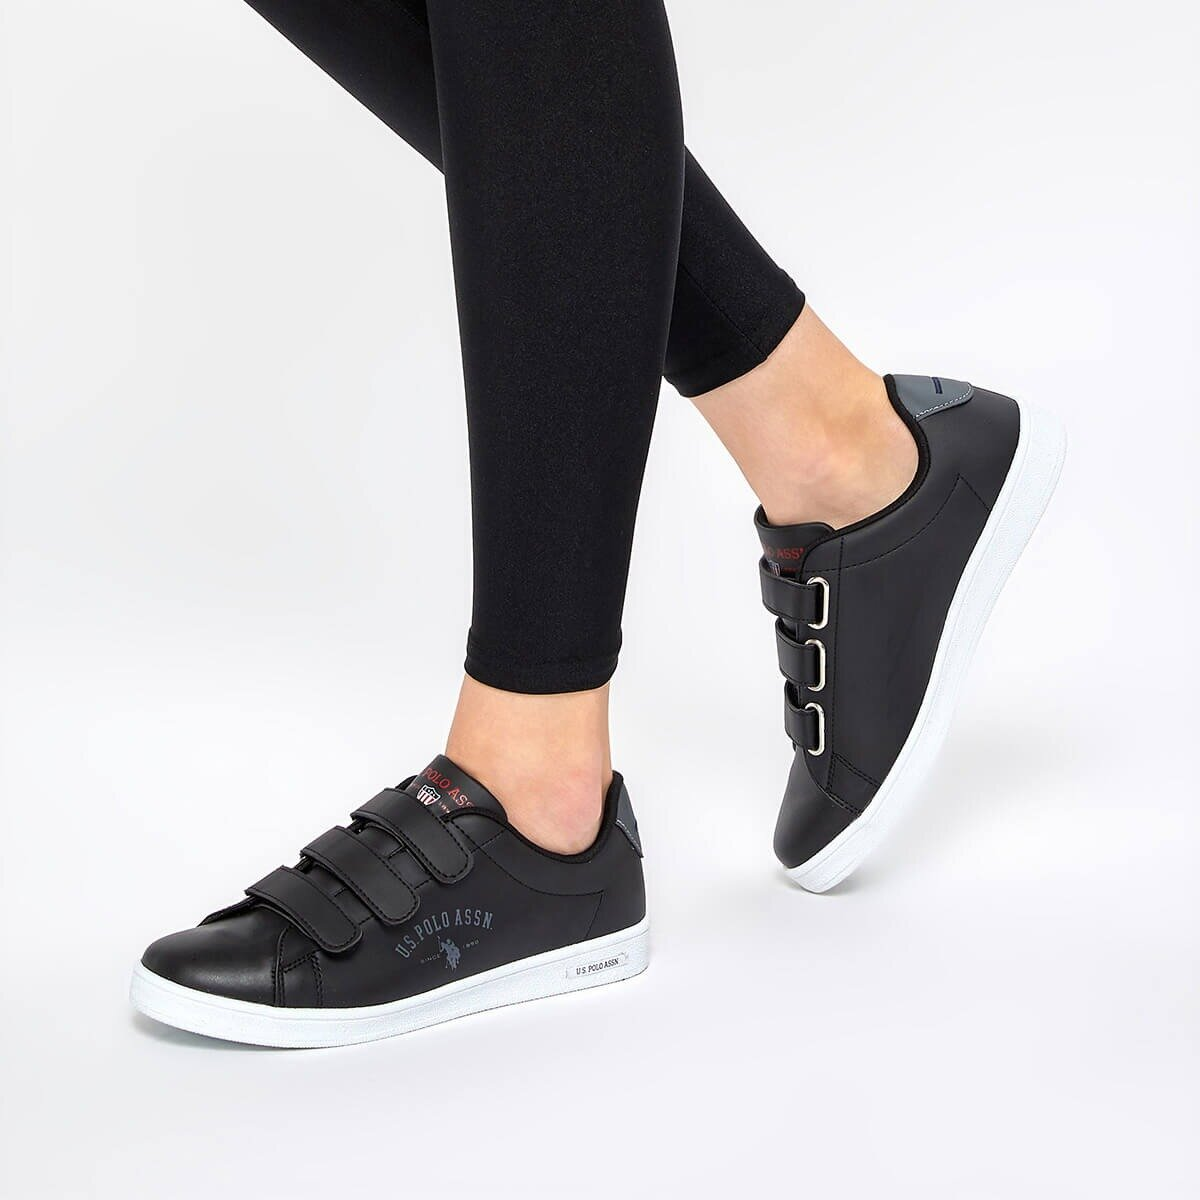 FLO SINGER Black Women 'S Sneaker Shoes U.S. POLO ASSN.